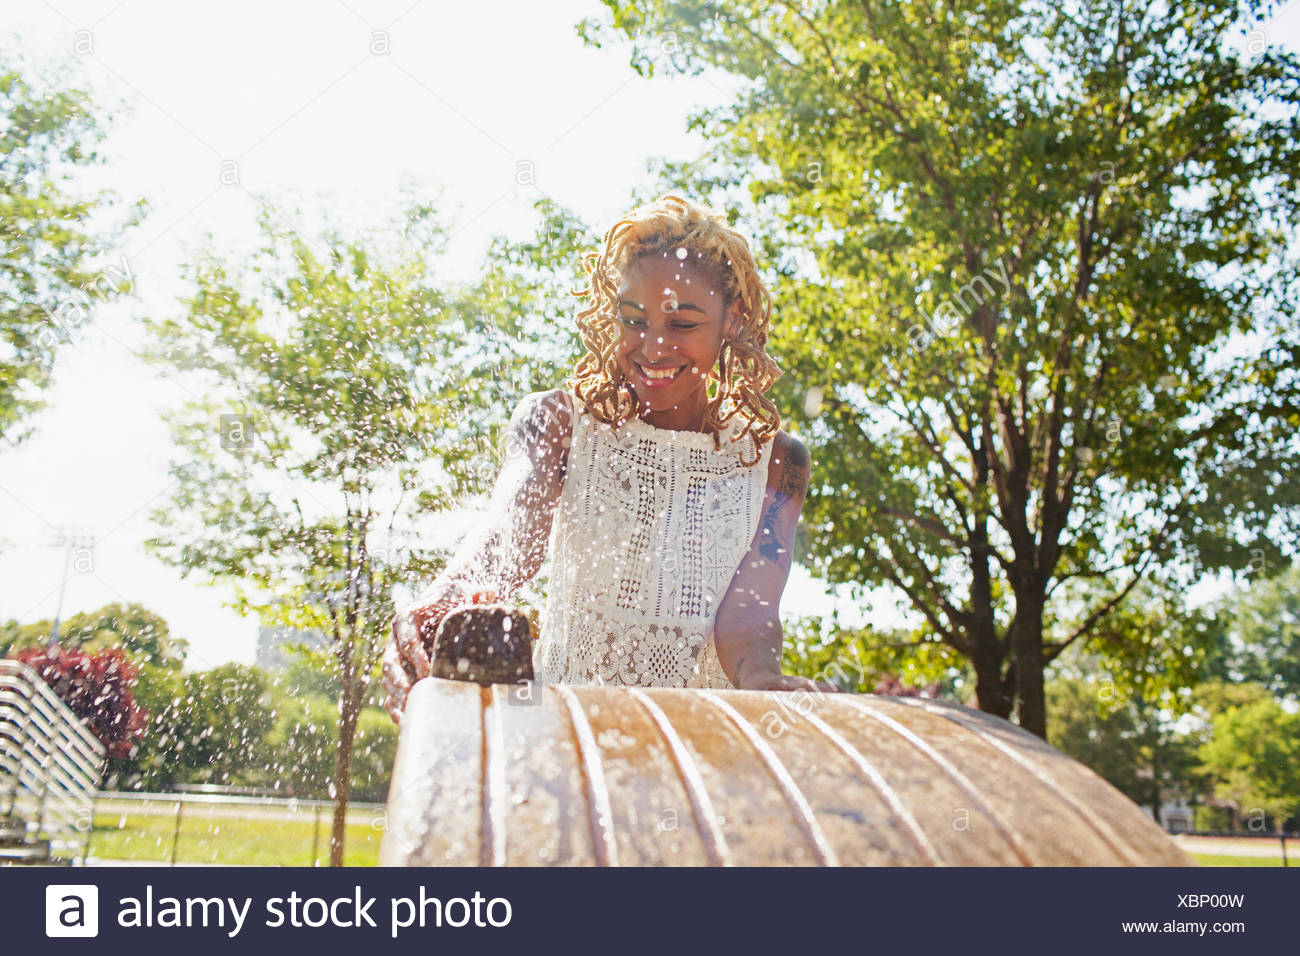 A young woman at a water fountain - Stock Image